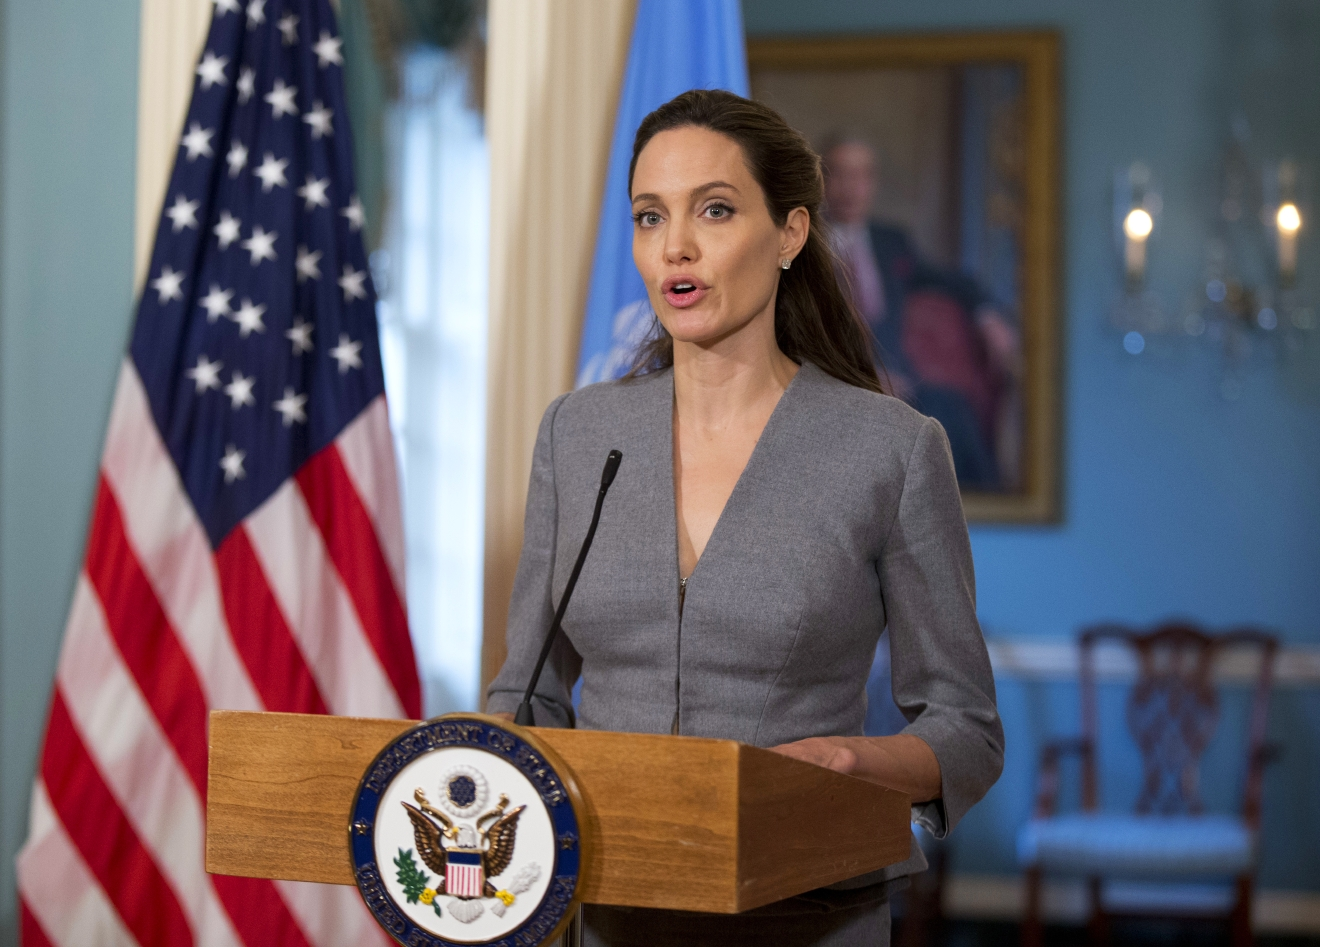 FILE- In this June 20, 2016, file photo, United Nations High Commissioner for Refugees Special Envoy Angelina Jolie speaks to reporters during a meeting with Secretary of State John Kerry at the Department of State in Washington. Jolie said in a New York Times editorial Thursday, Feb. 2, 2017, that the U.S. decision to suspend refugee resettlements and visits from several Muslim-majority countries isn't the American way. (AP Photo/Manuel Balce Ceneta)